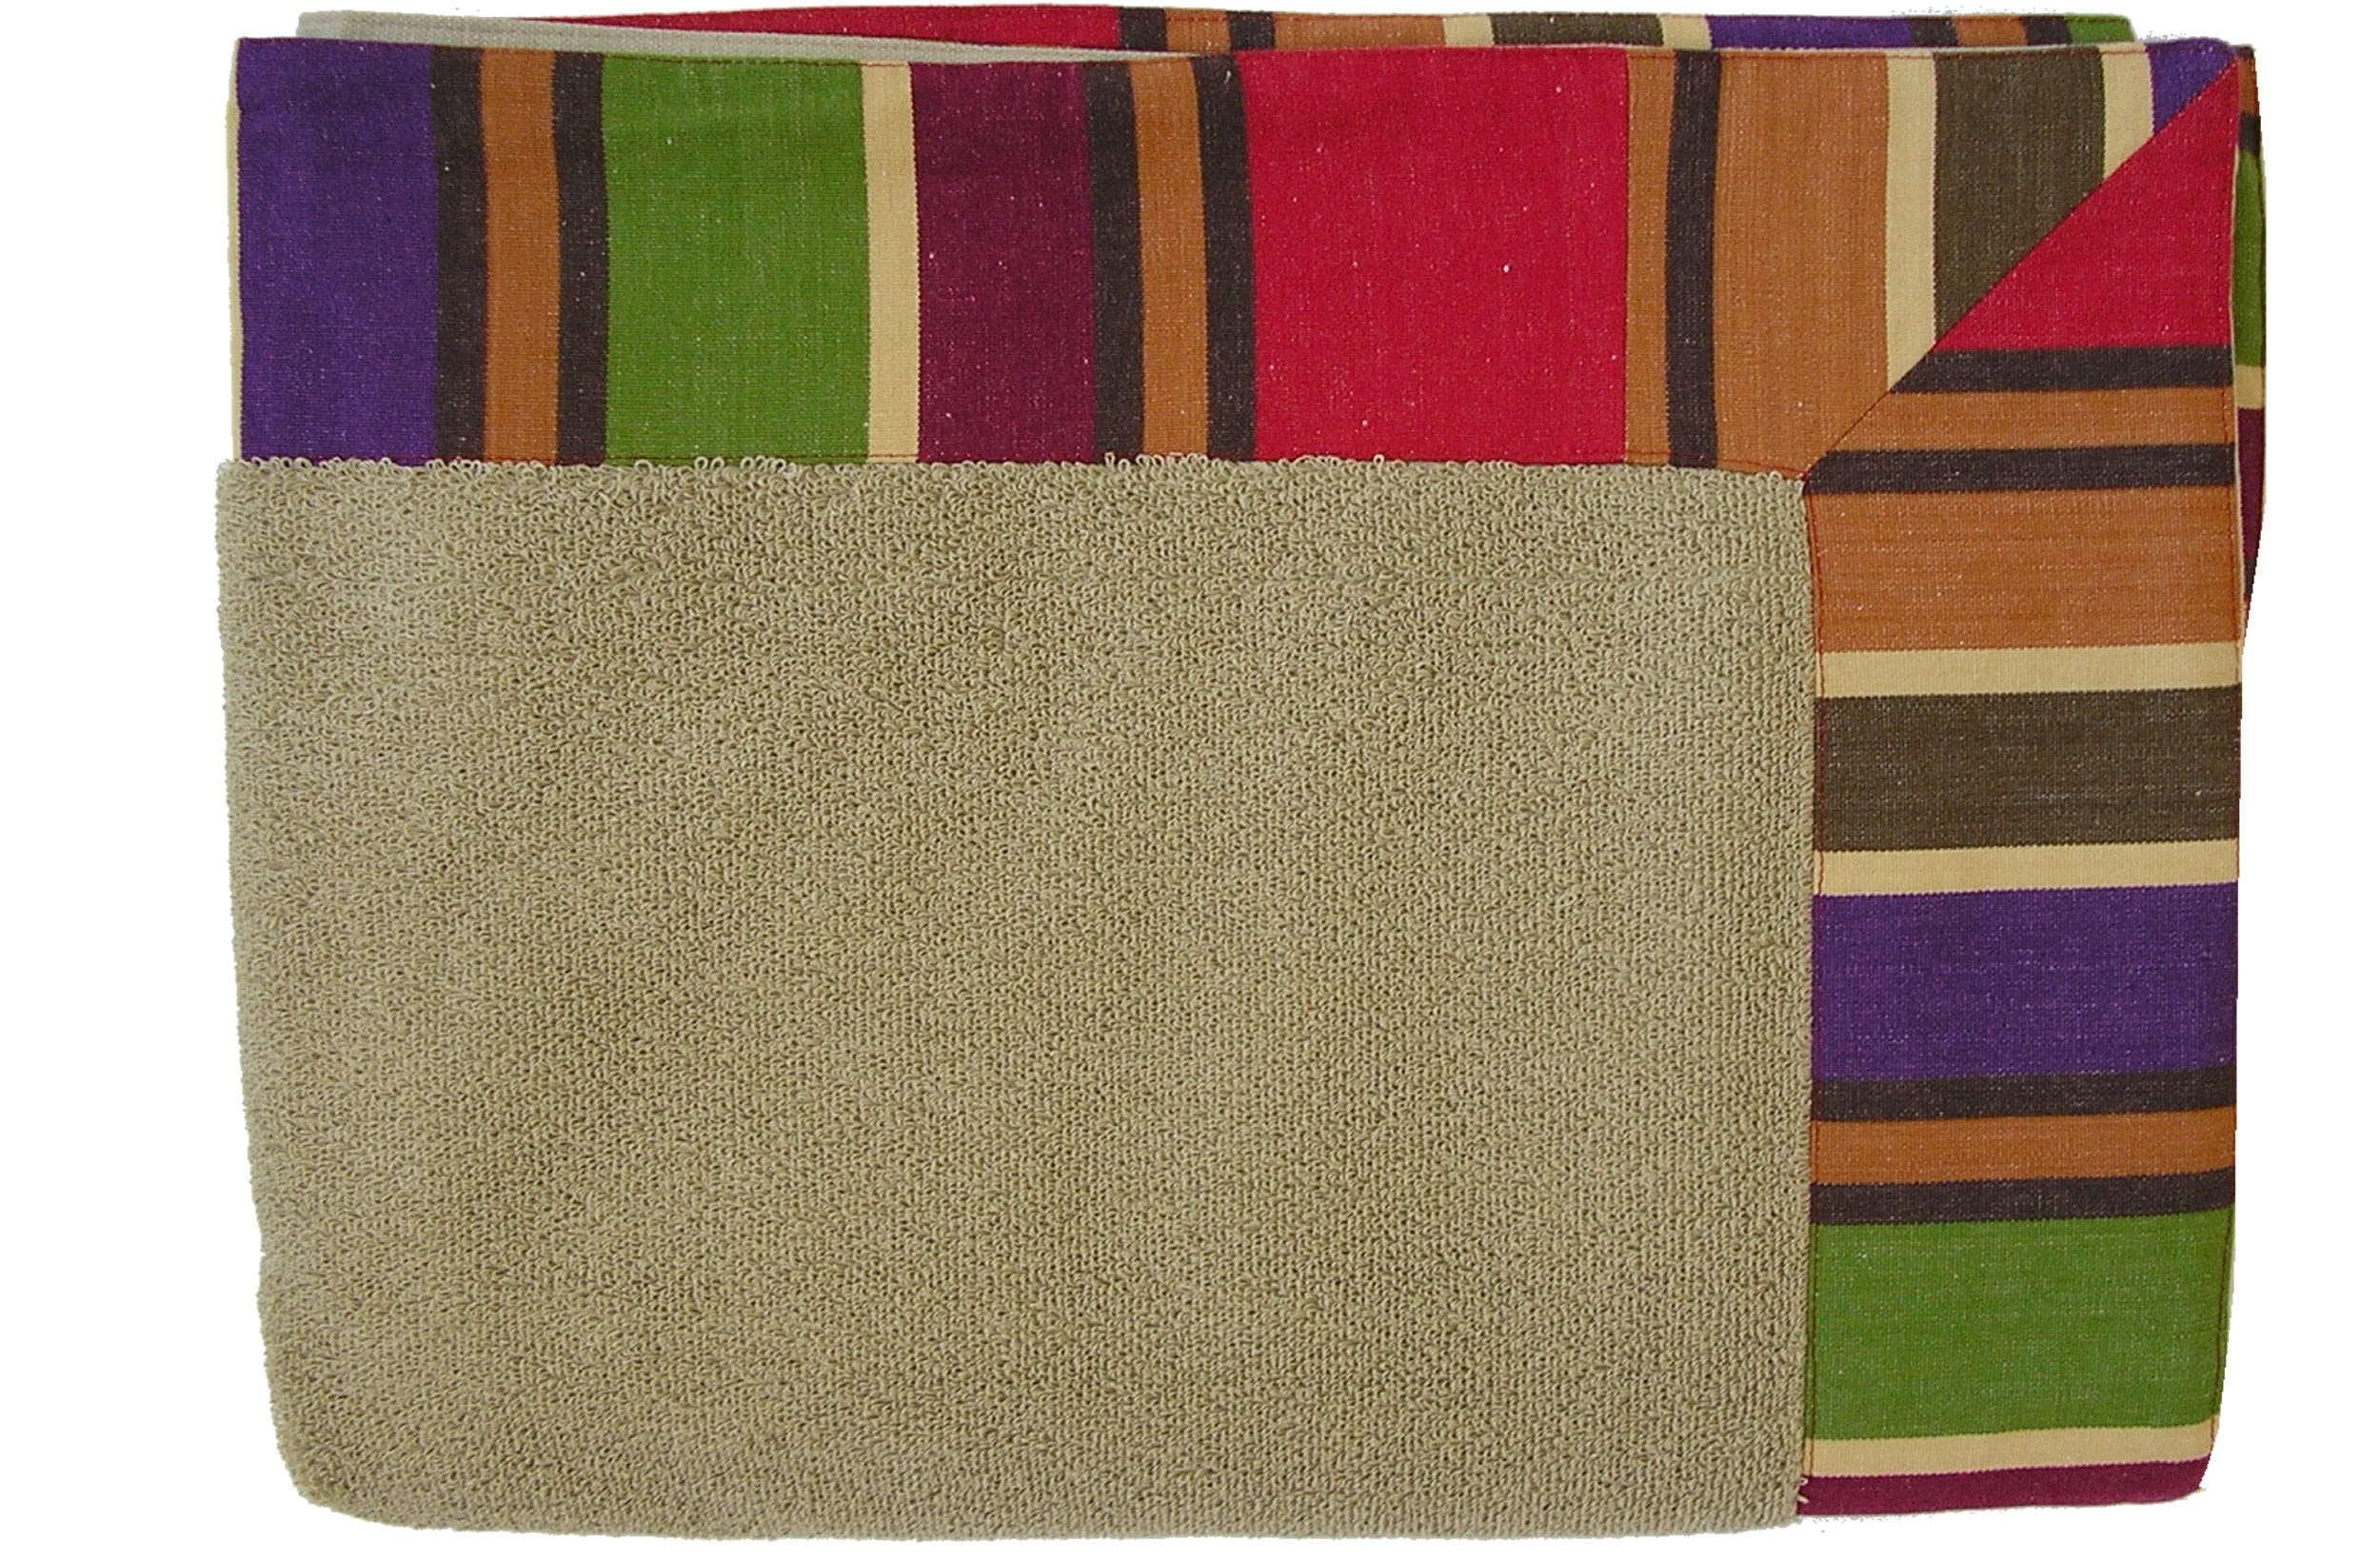 Extra Large Beige Beach Towels with striped border in caramel, beige, purple, green